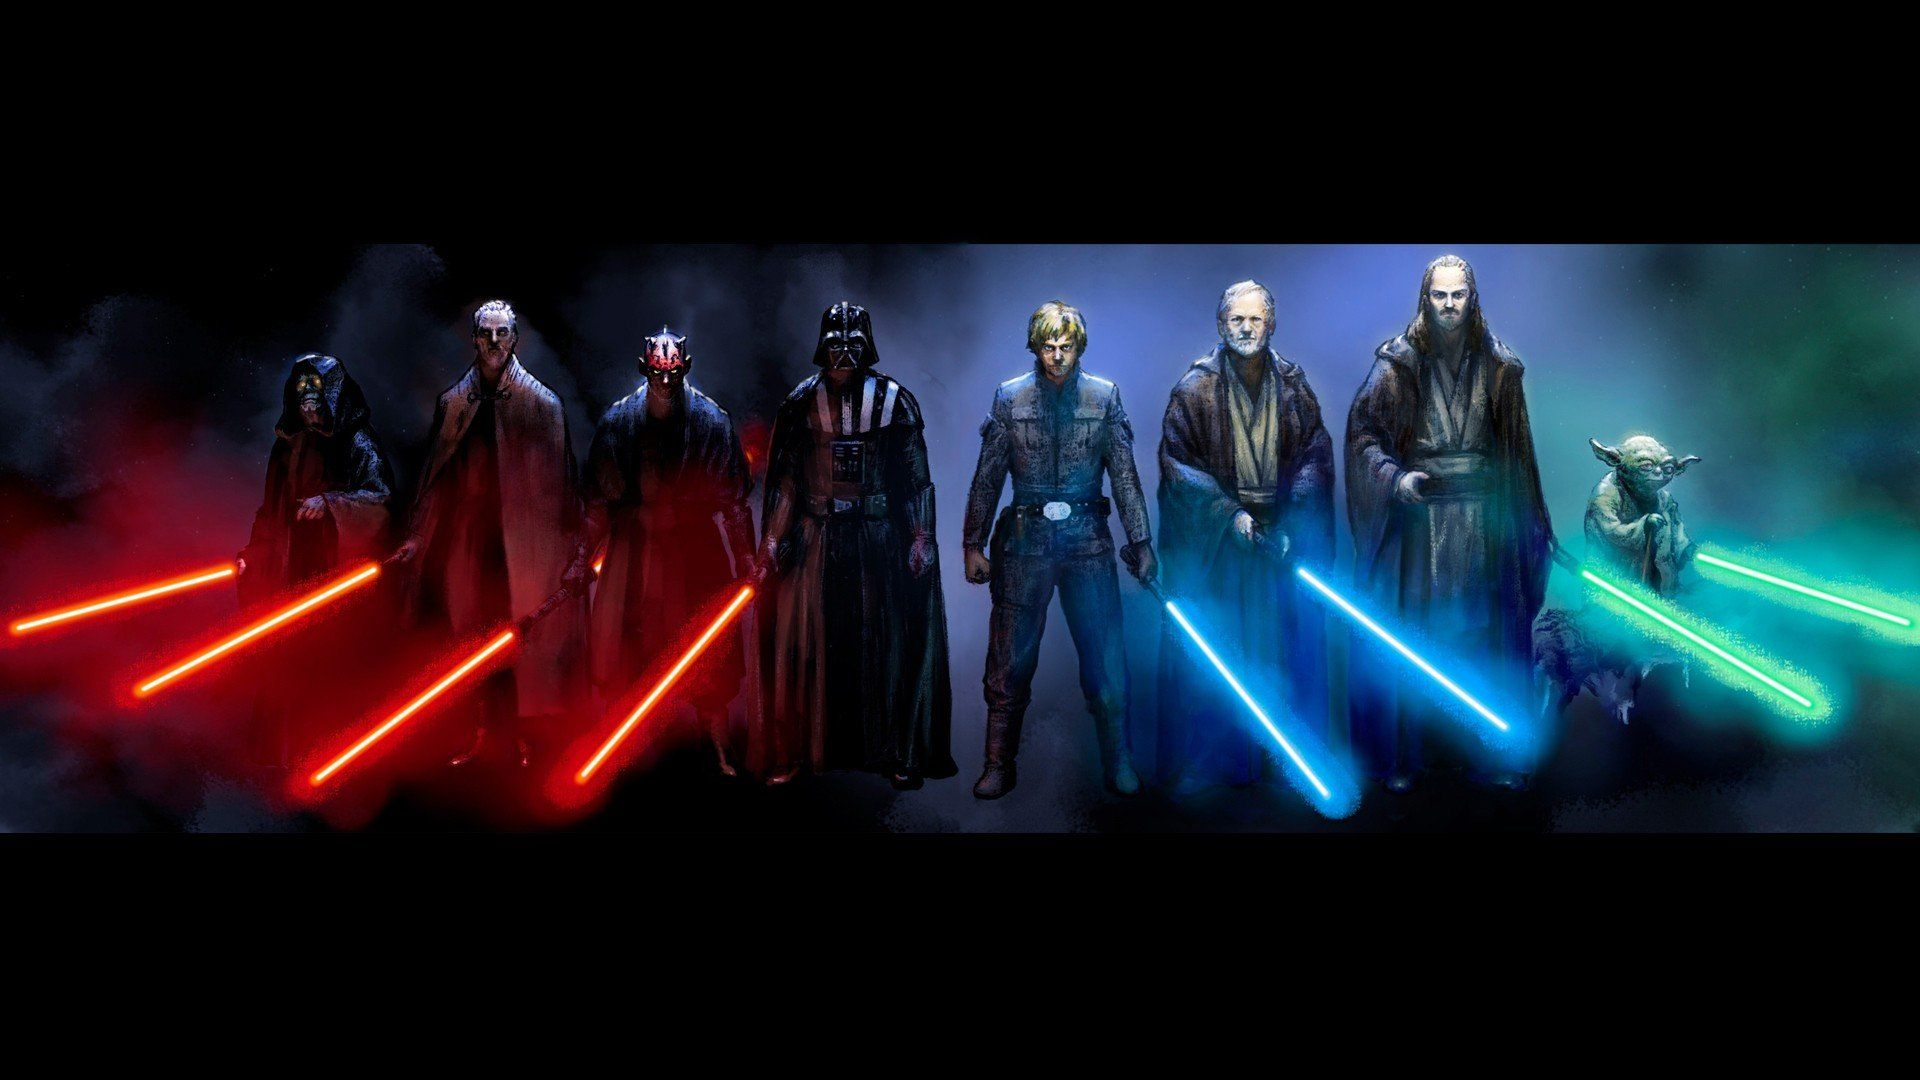 star wars lightsaber characters 1920x1080 wallpaper | sw